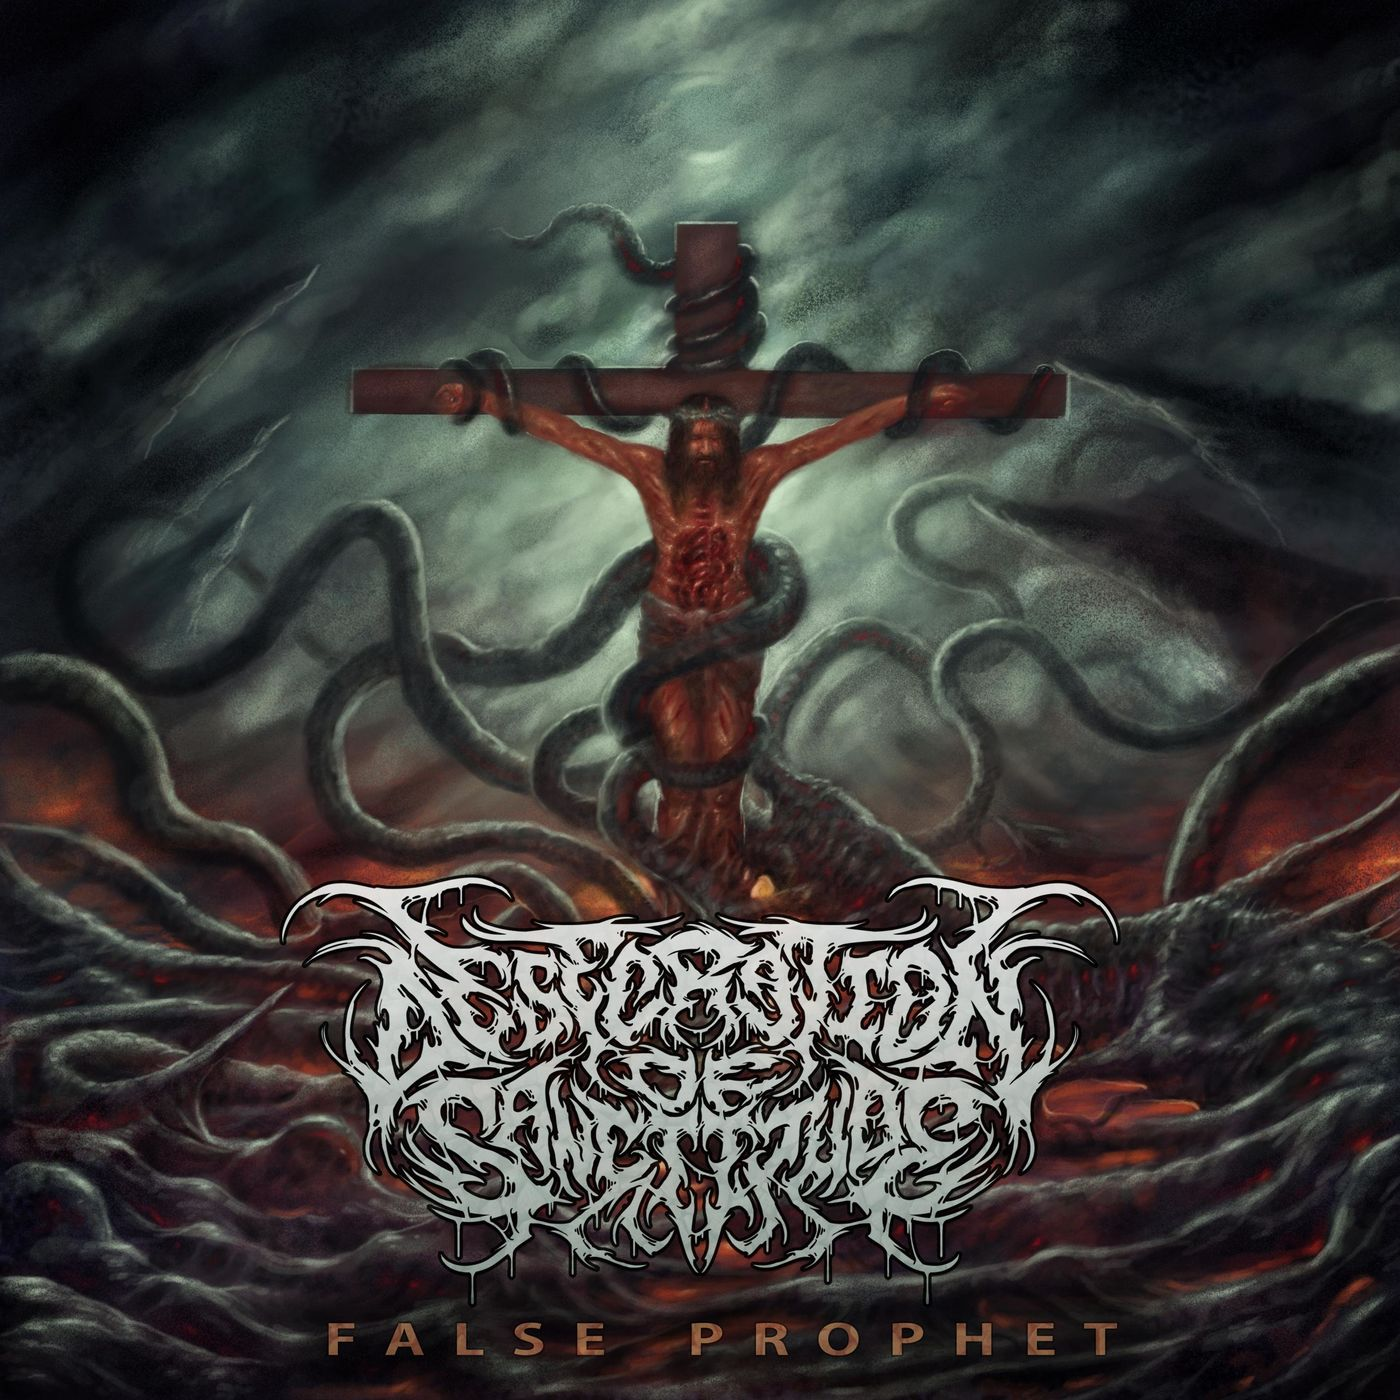 Desecration of Sanctitude - False Prophet [single] (2020)